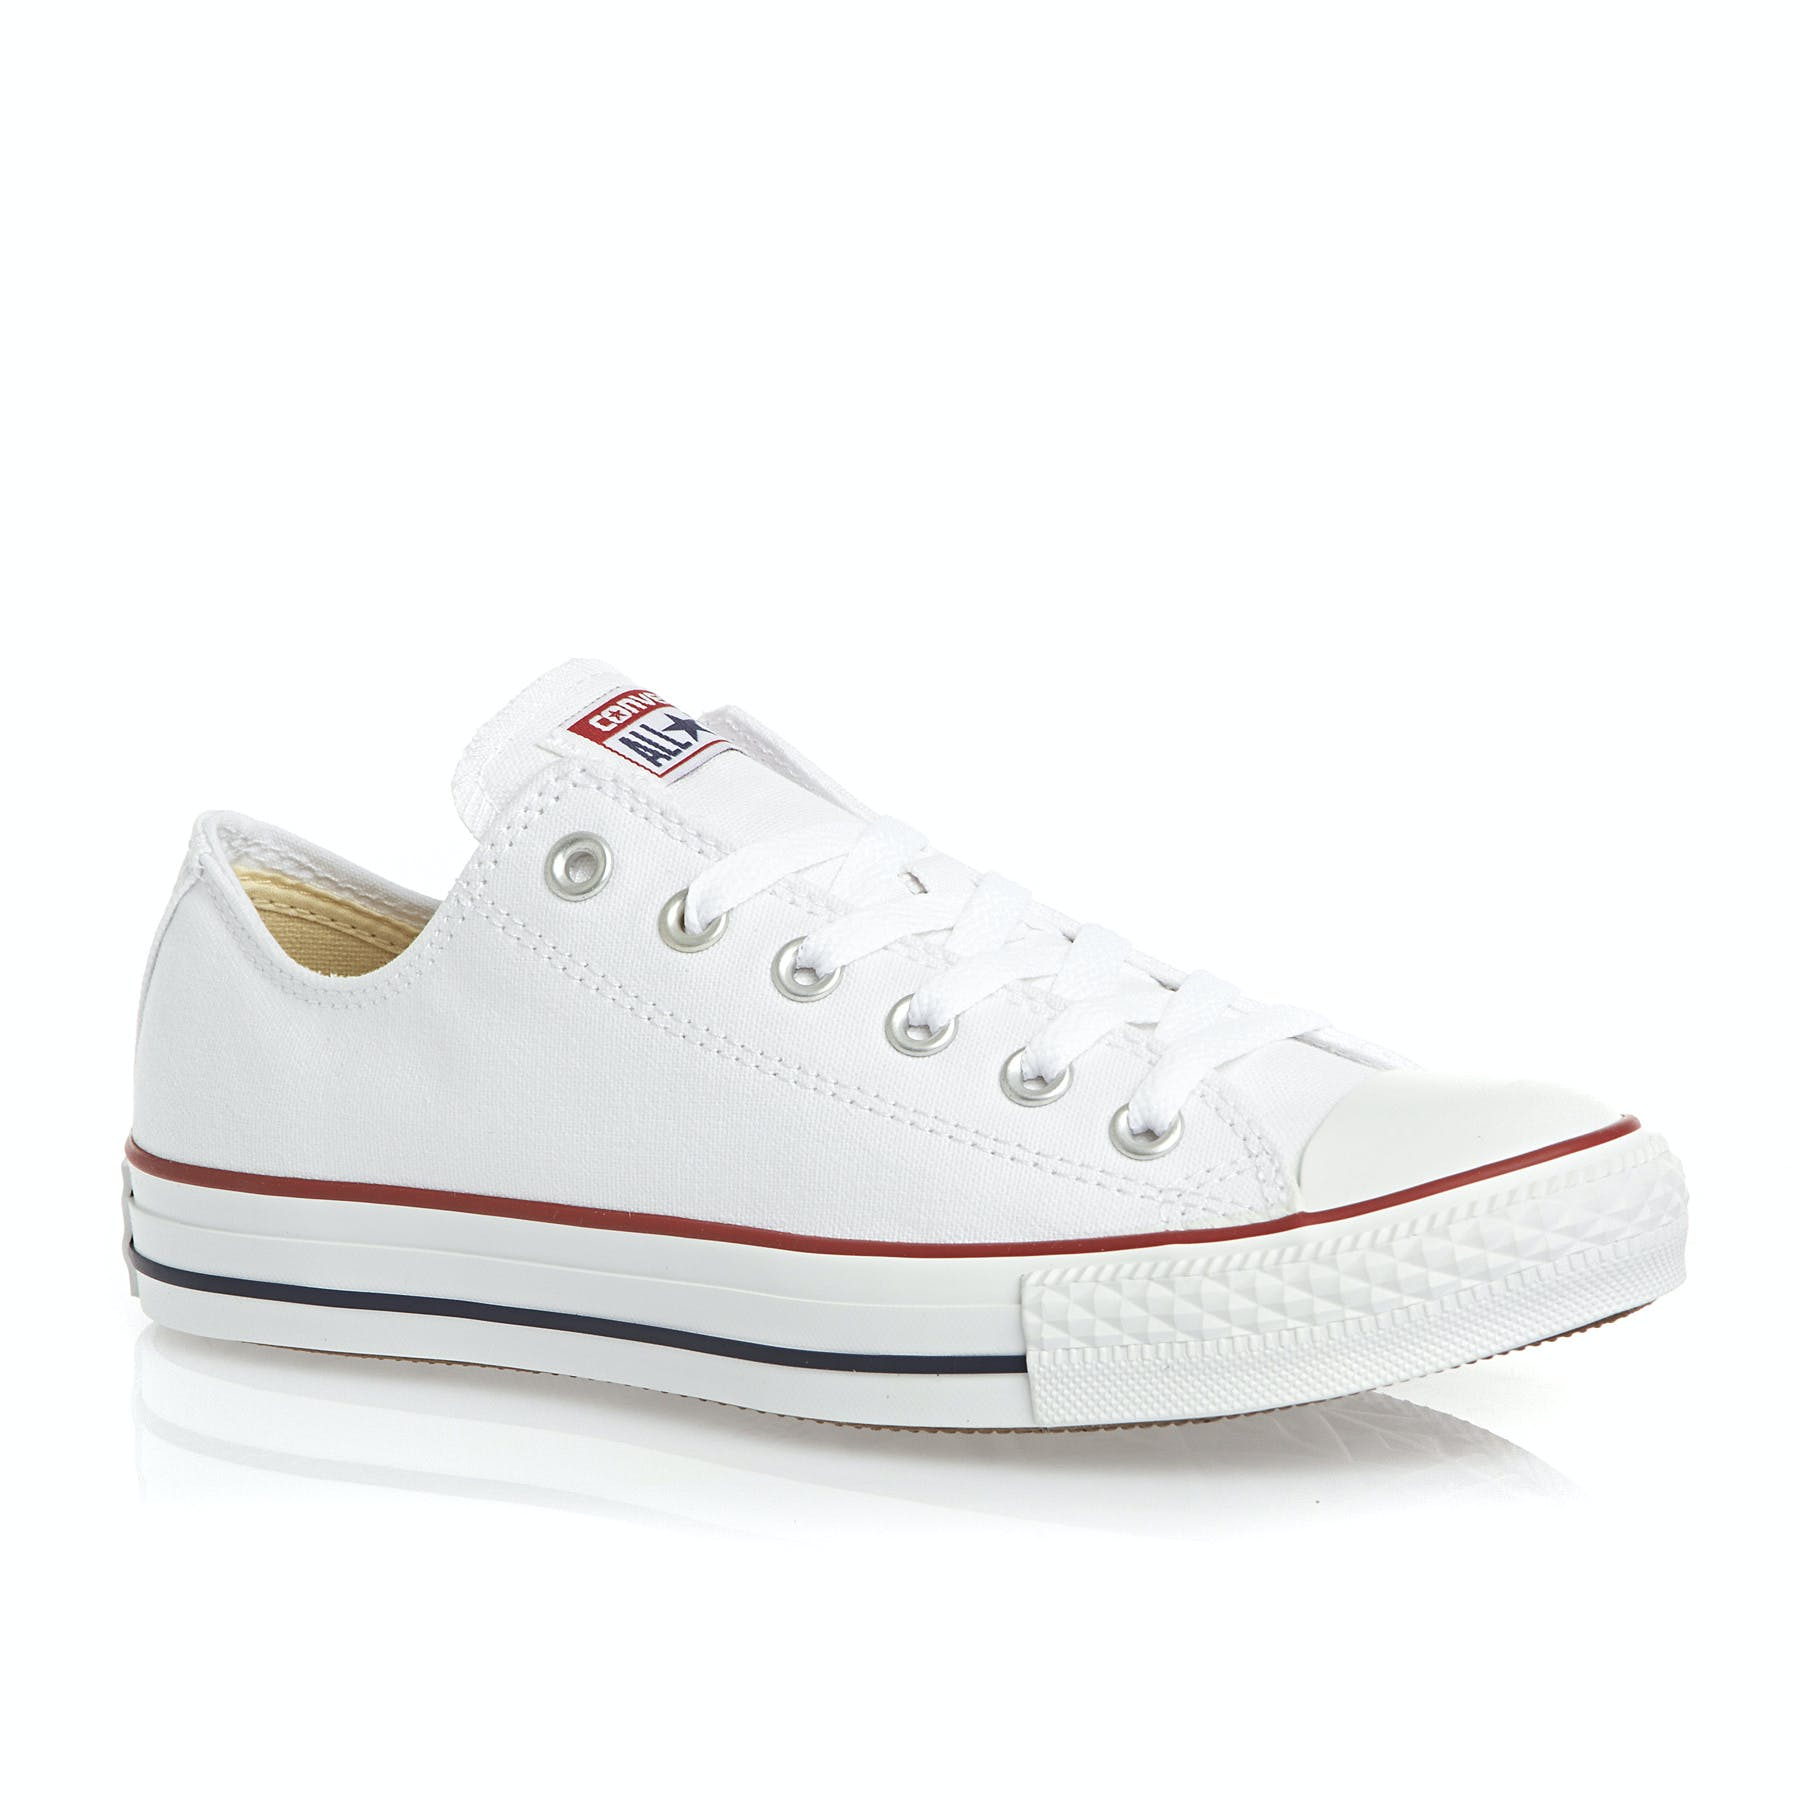 en soldes 76887 3ace6 Converse Chuck Taylor All Stars OX Shoes - Free Delivery options on All  Orders from Surfdome UK